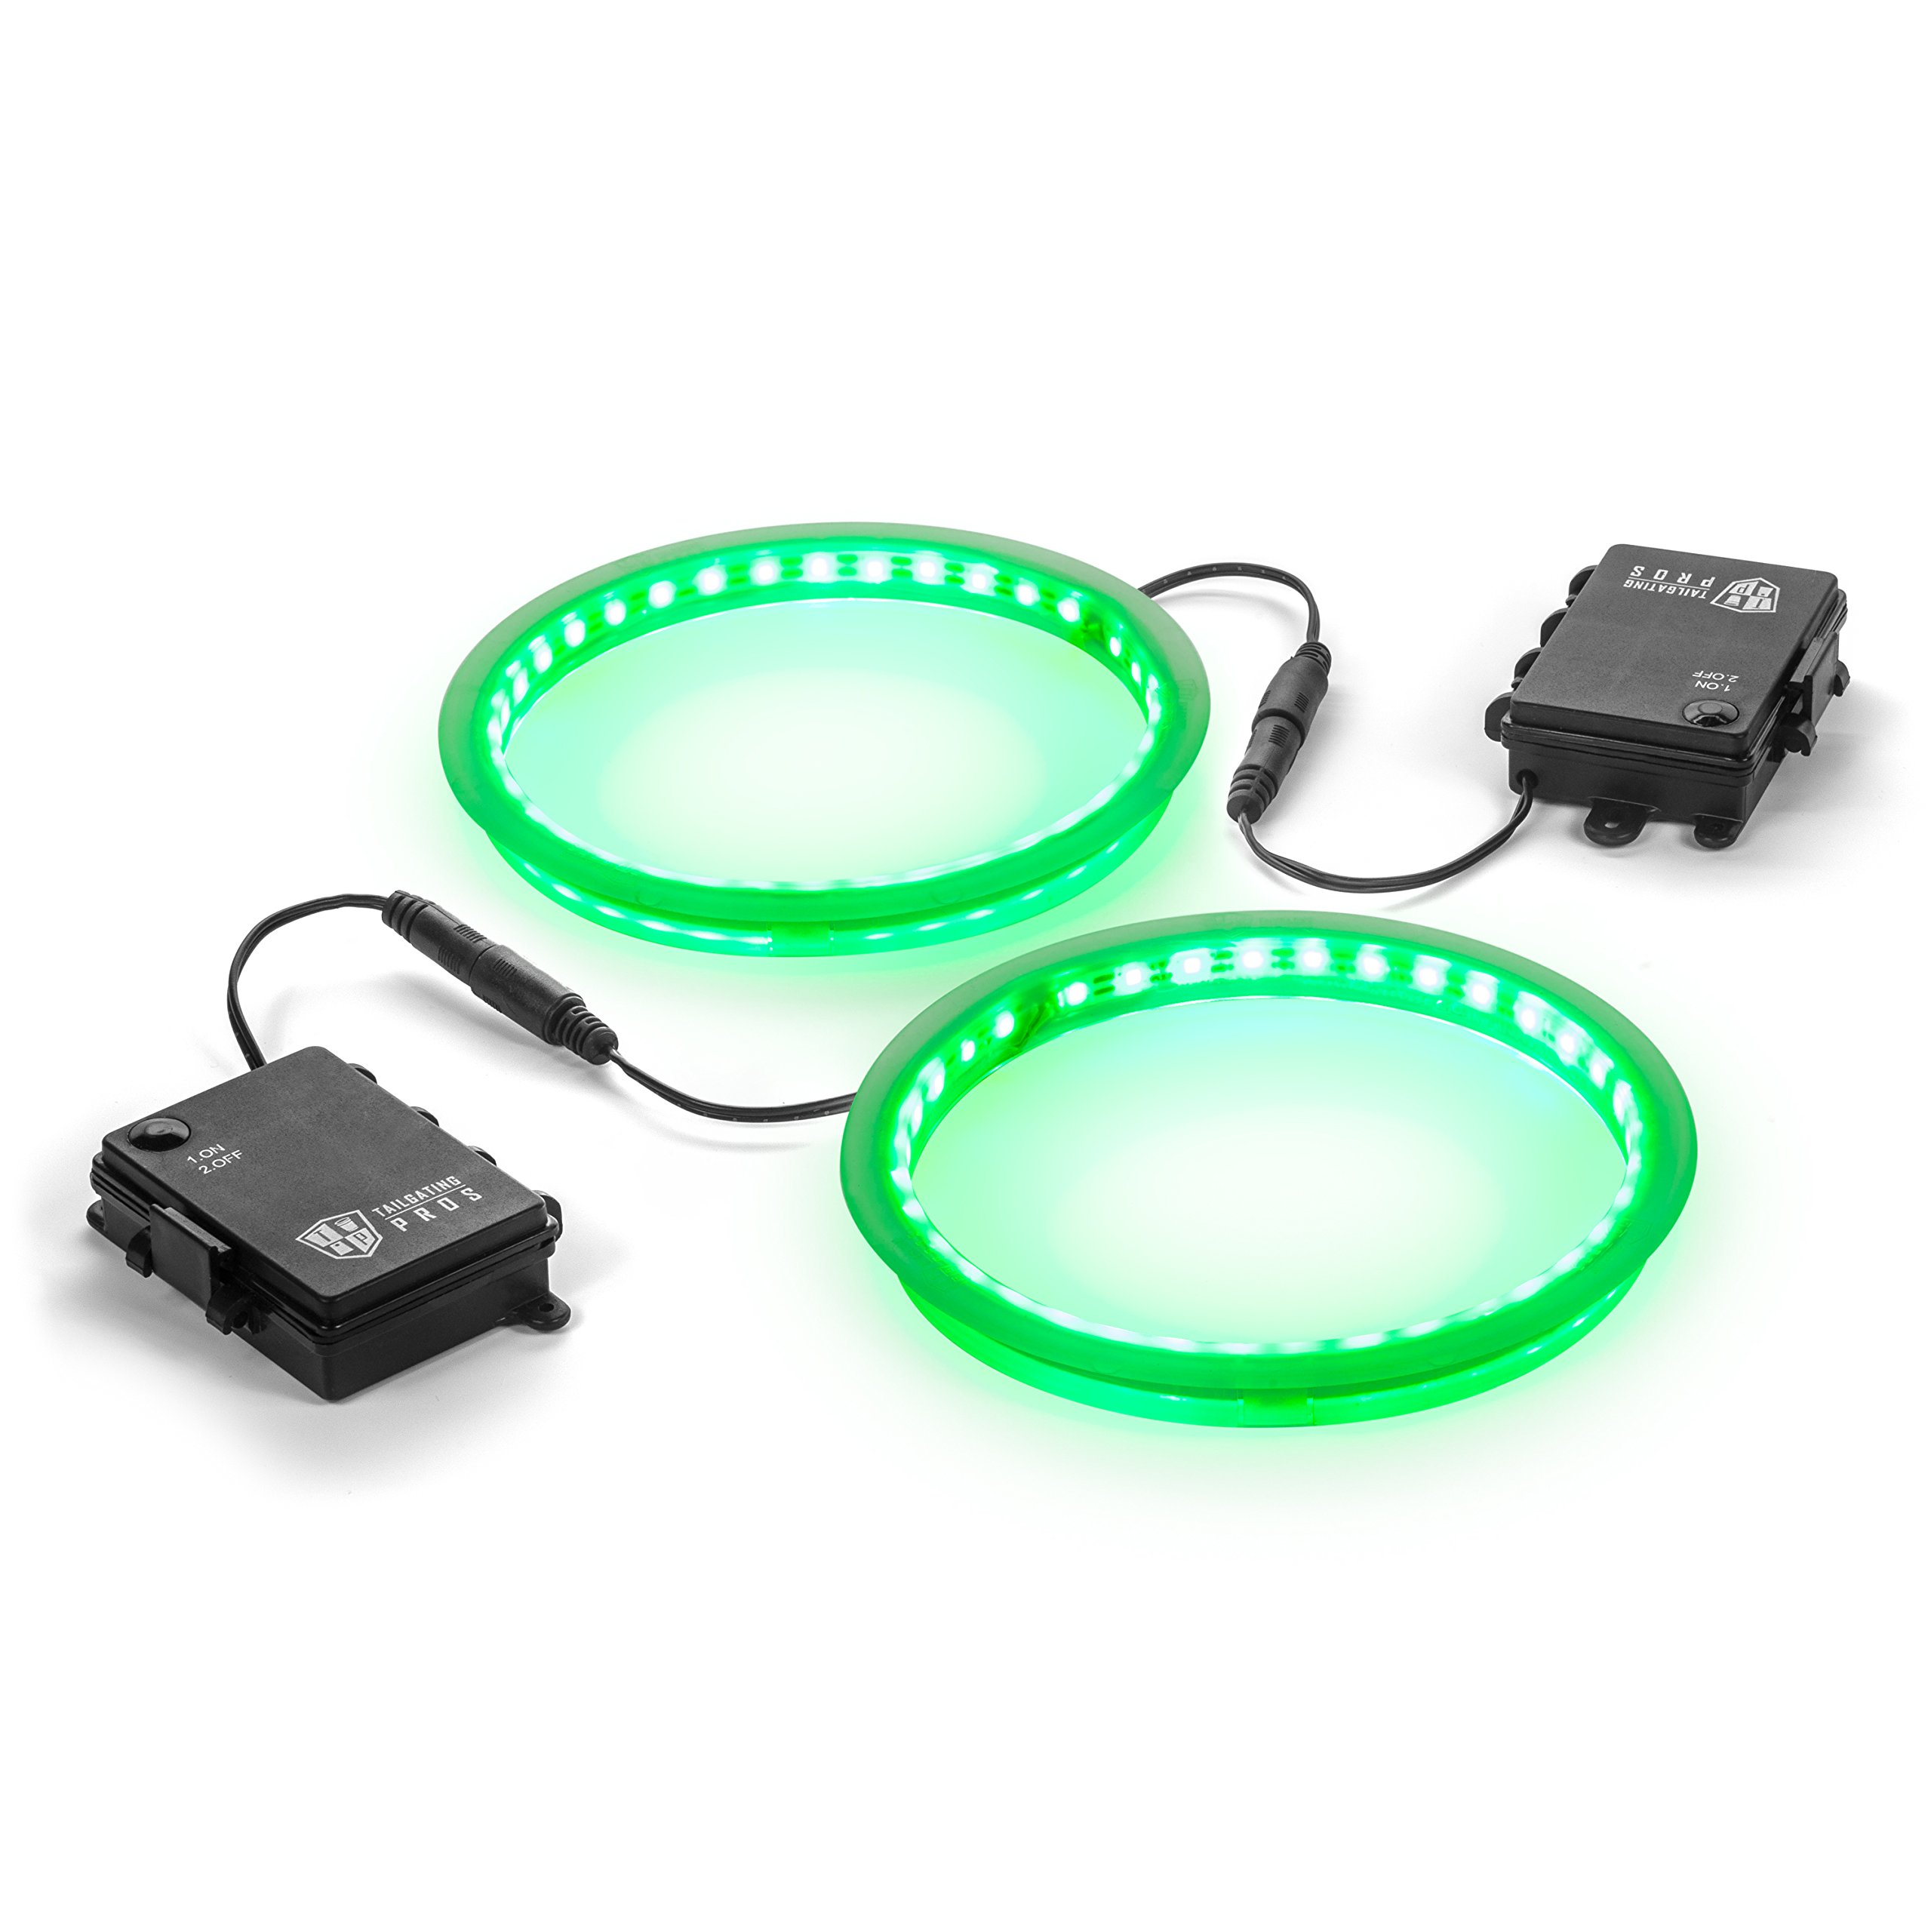 Tailgating Pros Premium 36 LED Cornhole Light Ring Set - 6 Color Options + Multicolored (Green) by Tailgating Pros